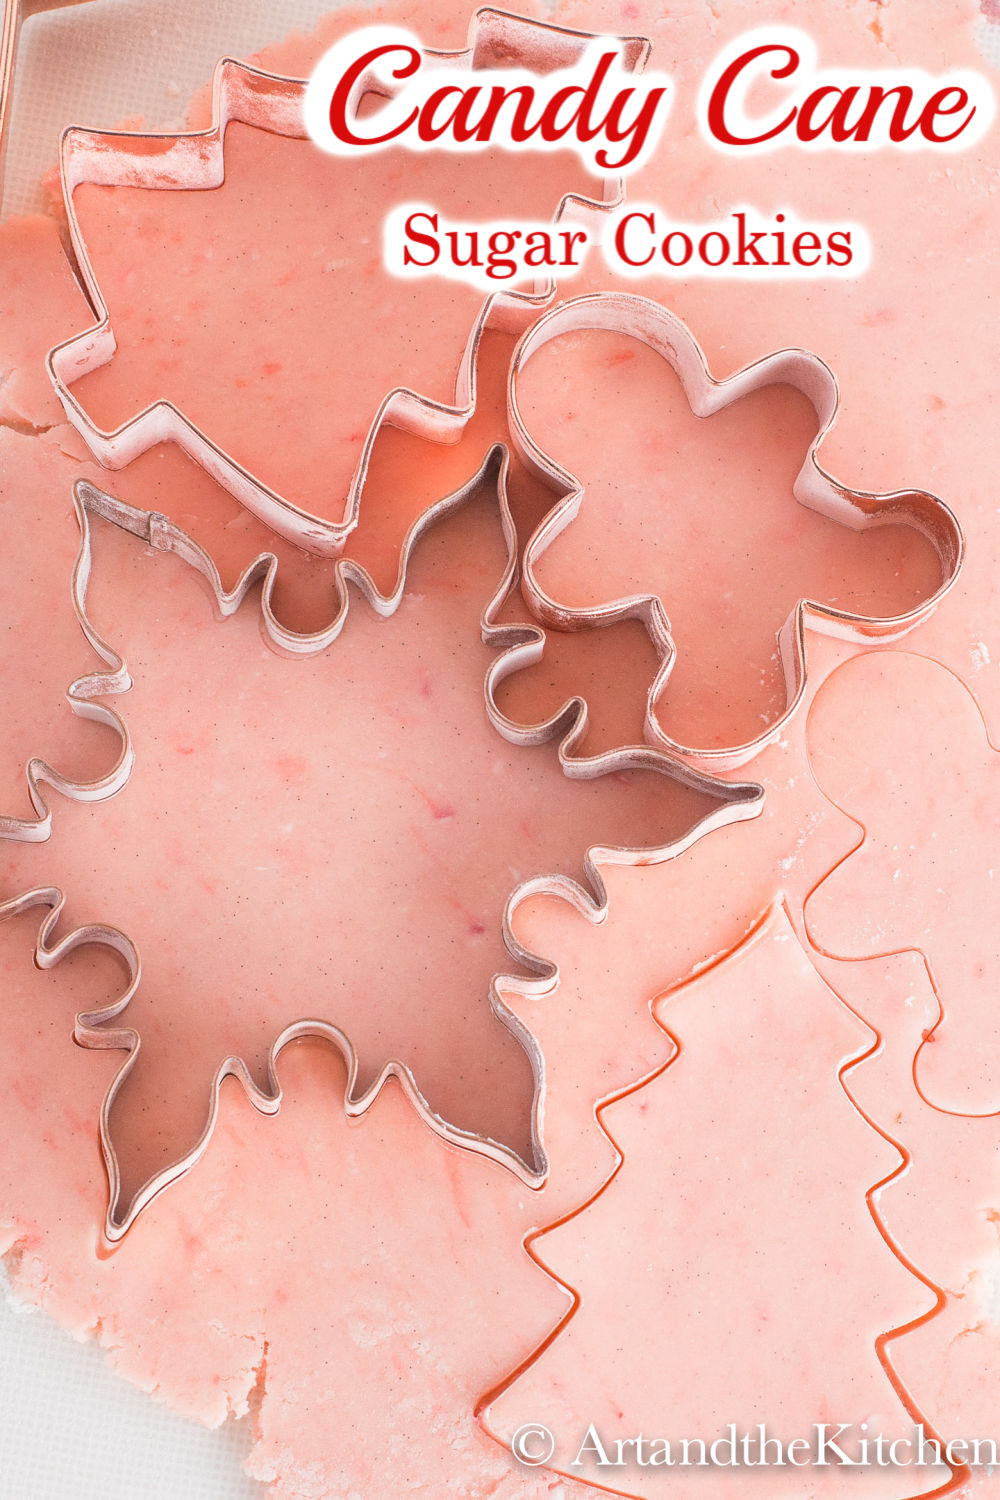 Amazing tasting Candy Cane Sugar Cookies. The perfect recipe for making decorative cut out cookies. via @artandthekitch